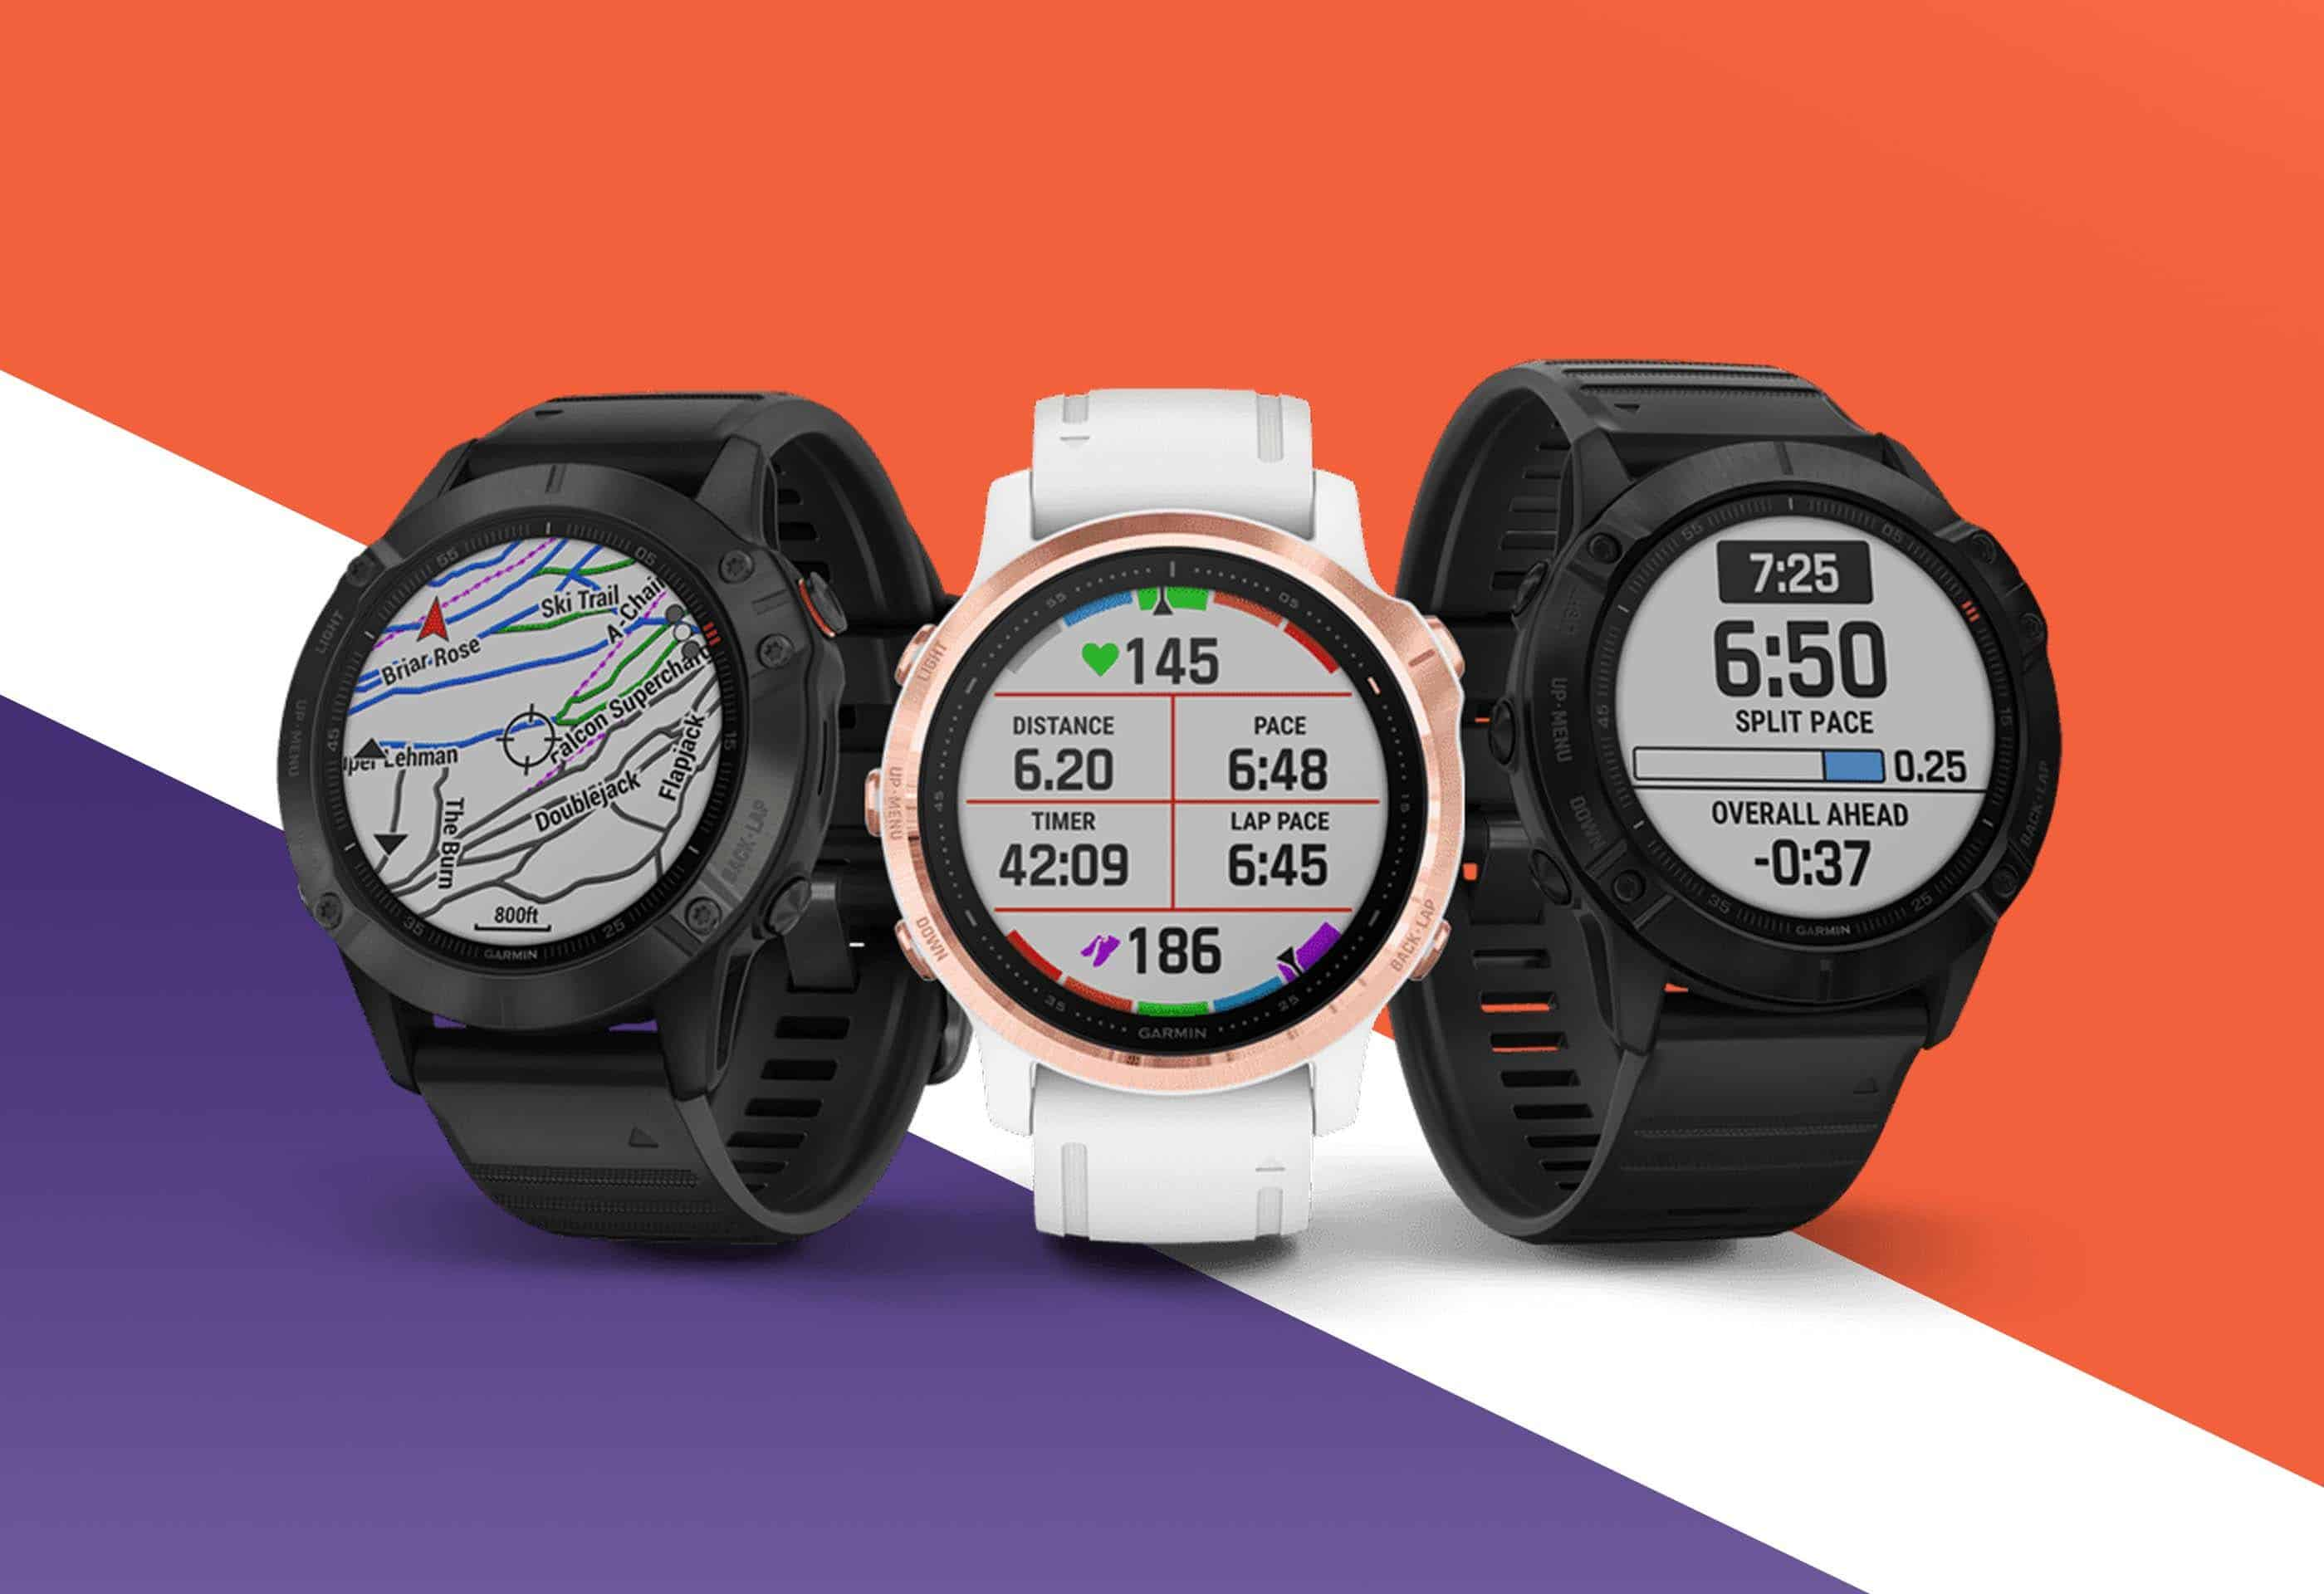 Garmin launches Fenix 6, 6S and Fenix 6X Pro smartwatches with solar charging feature